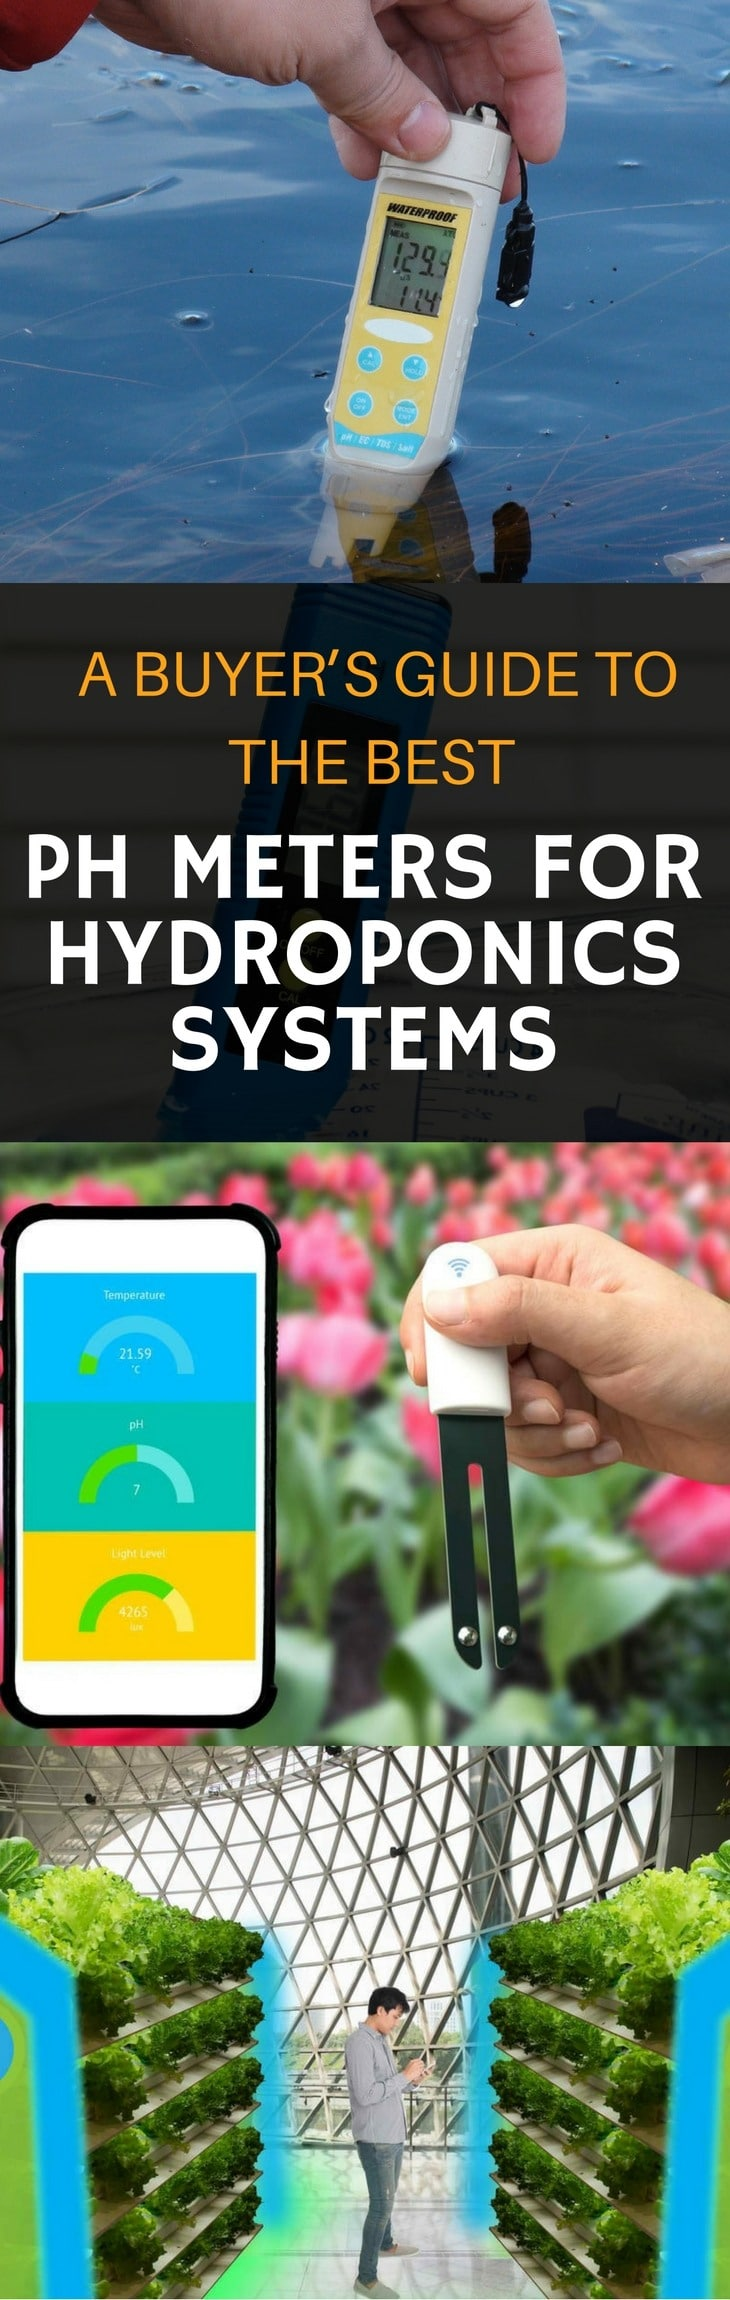 best pH meters for hydroponics pin it